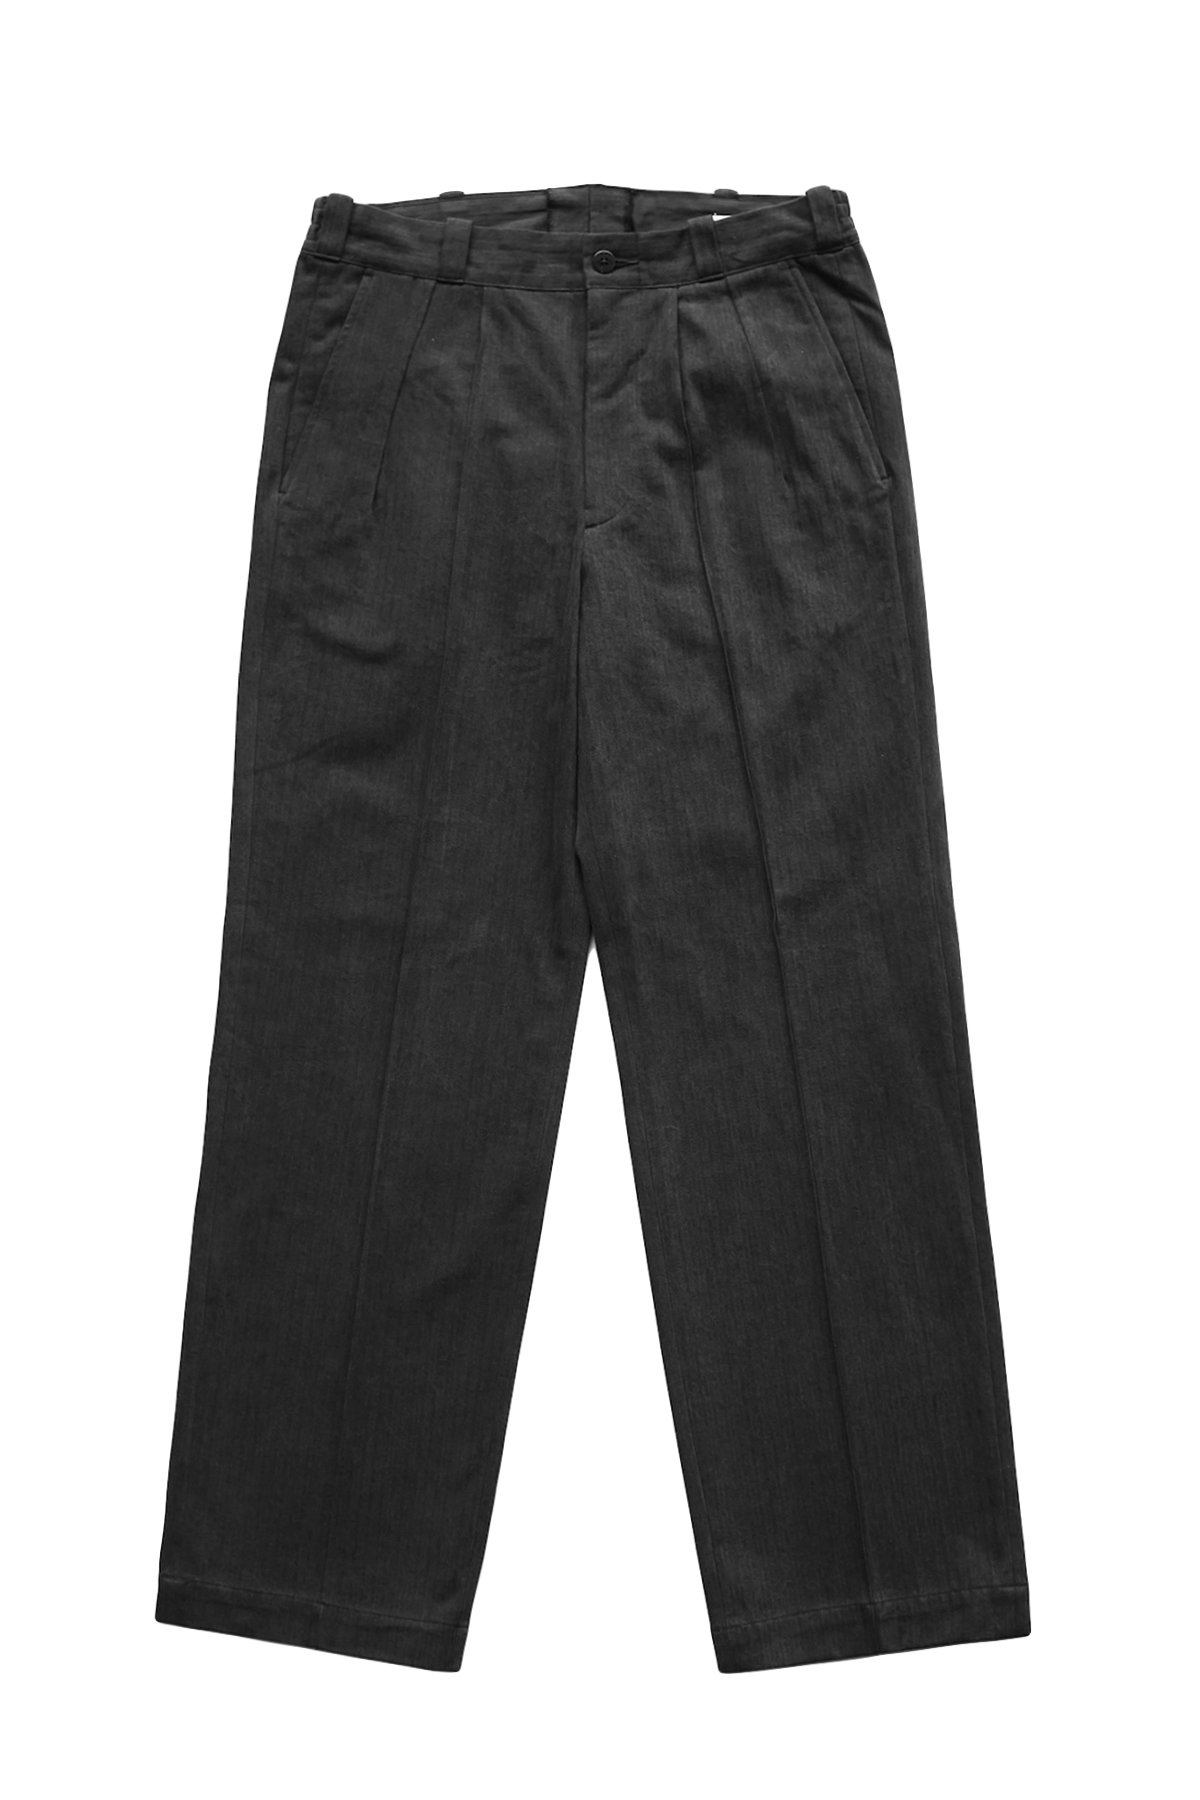 OLD JOE - FRONT TUCK ARMY TROUSER - GRAPHITE PRICE 31,900 tax-in